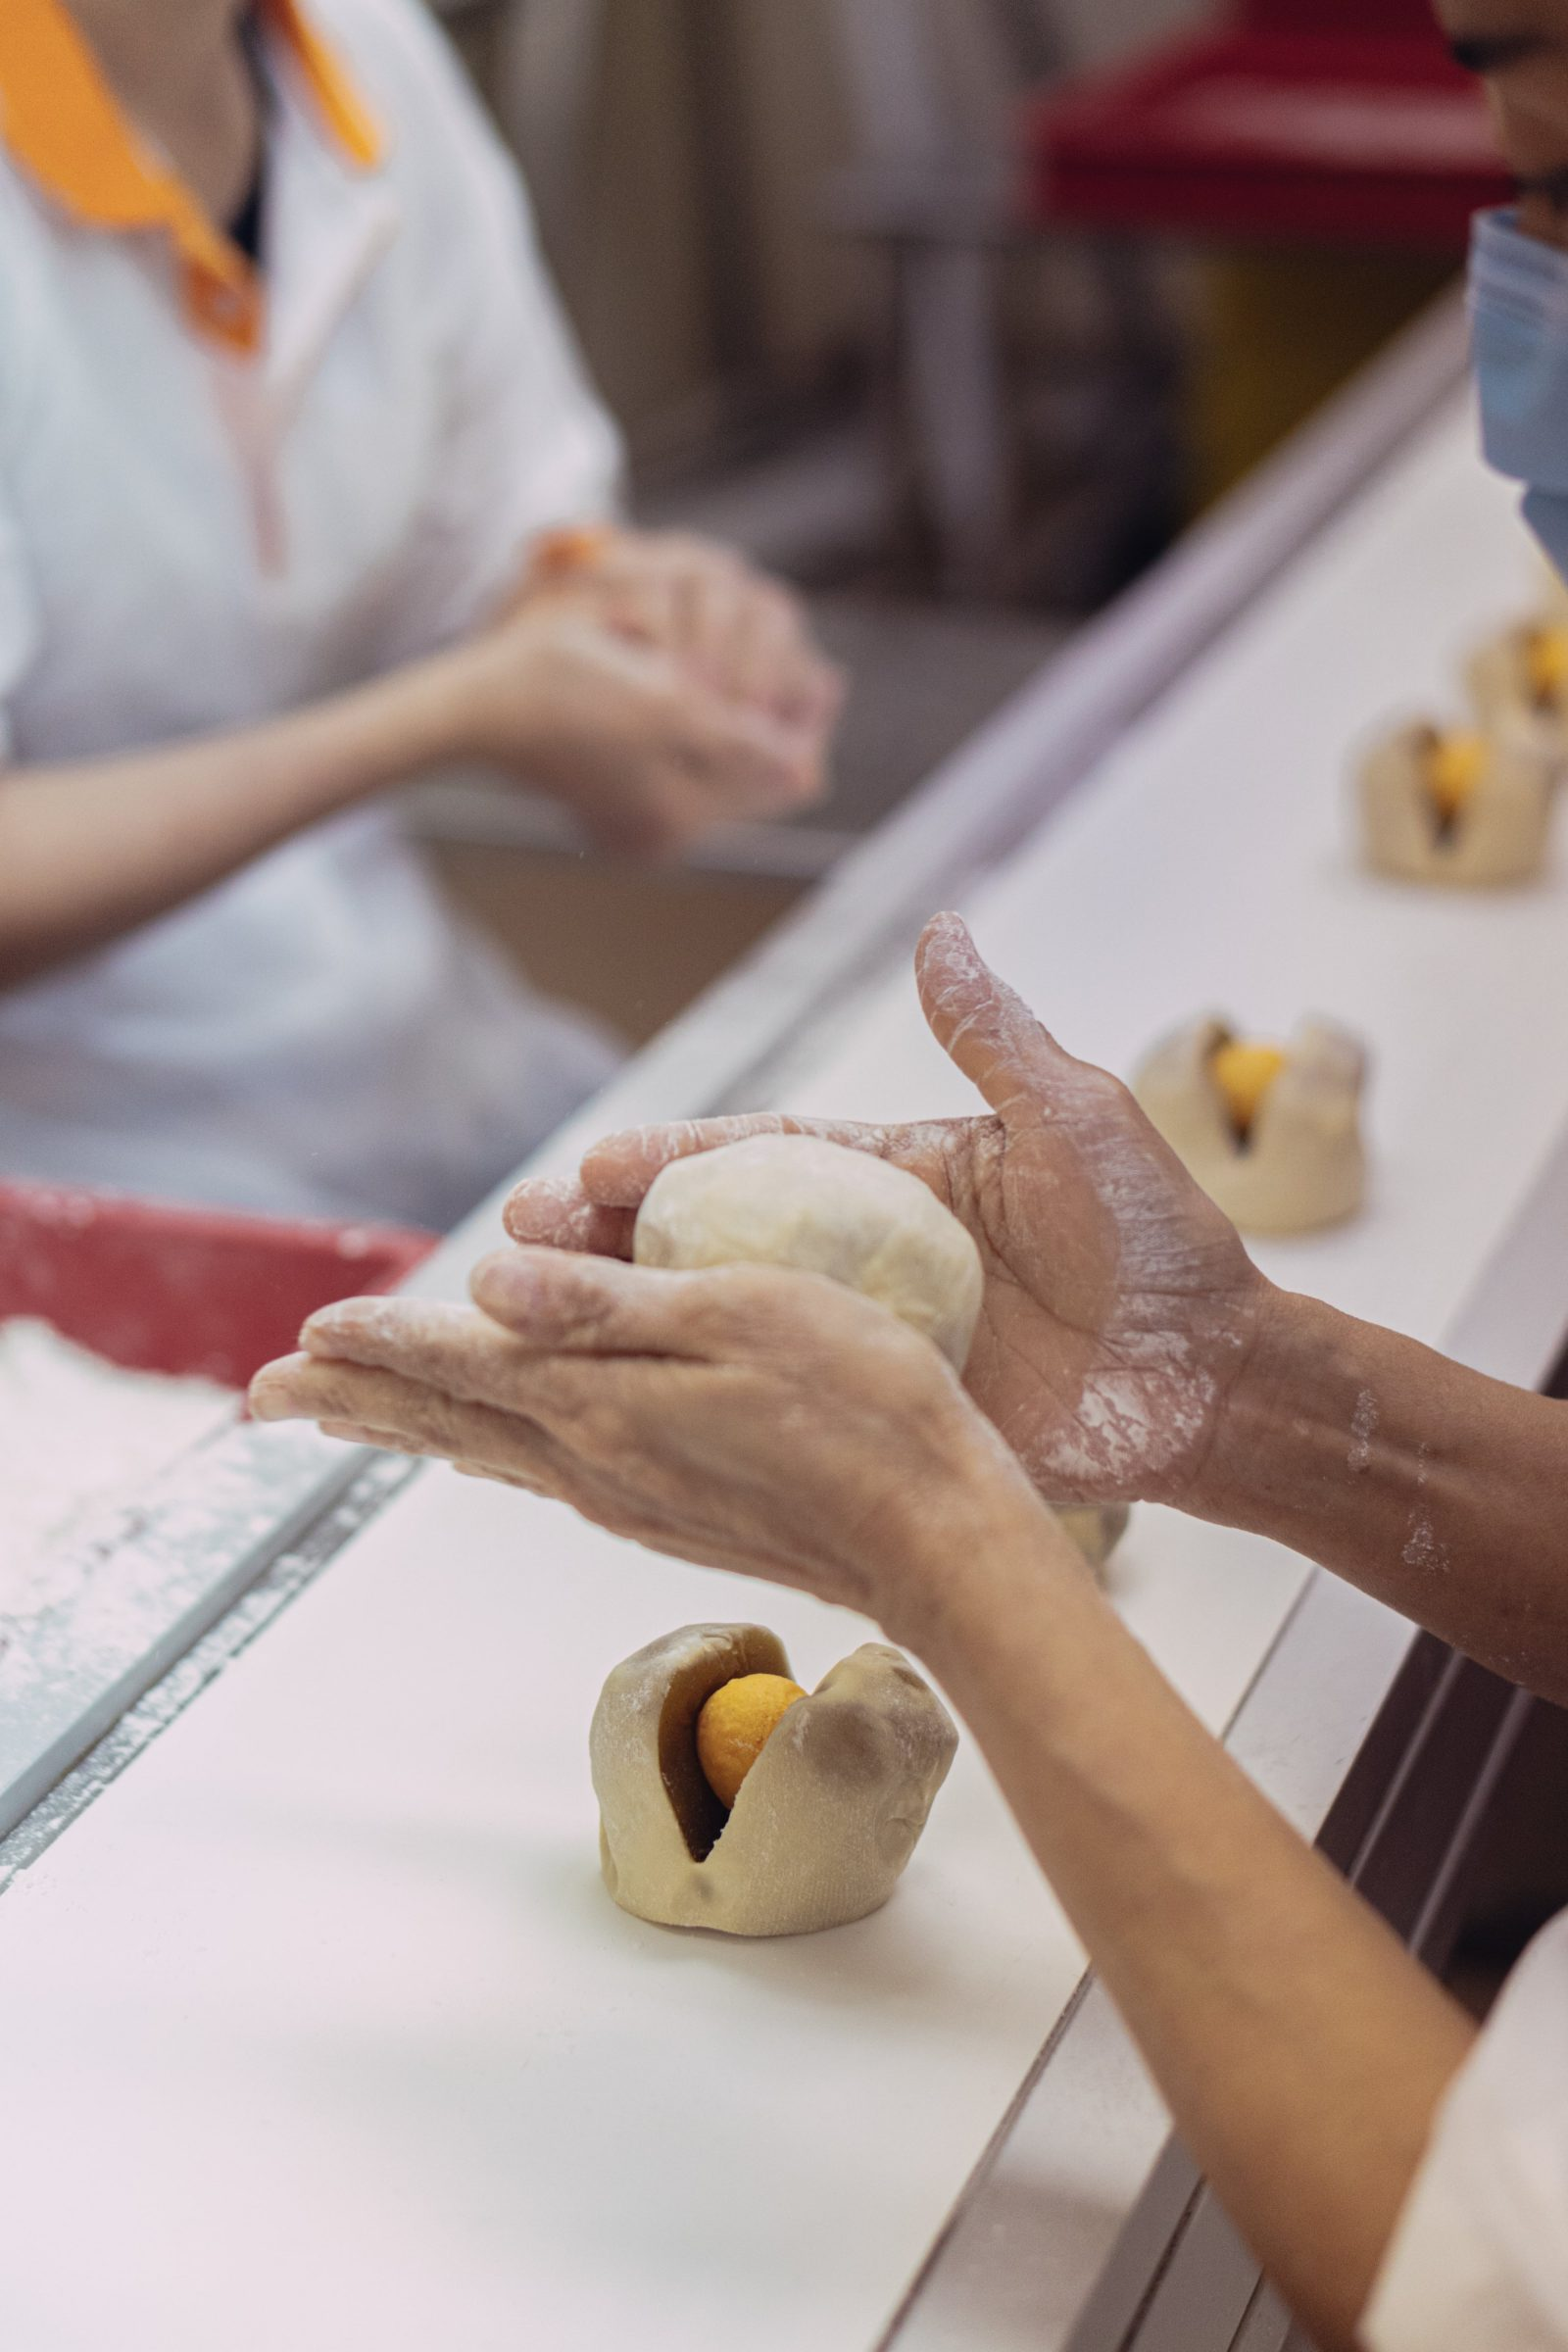 Bake Mission's mooncakes are carefully shaped by hand by a team of dedicated craftsmen